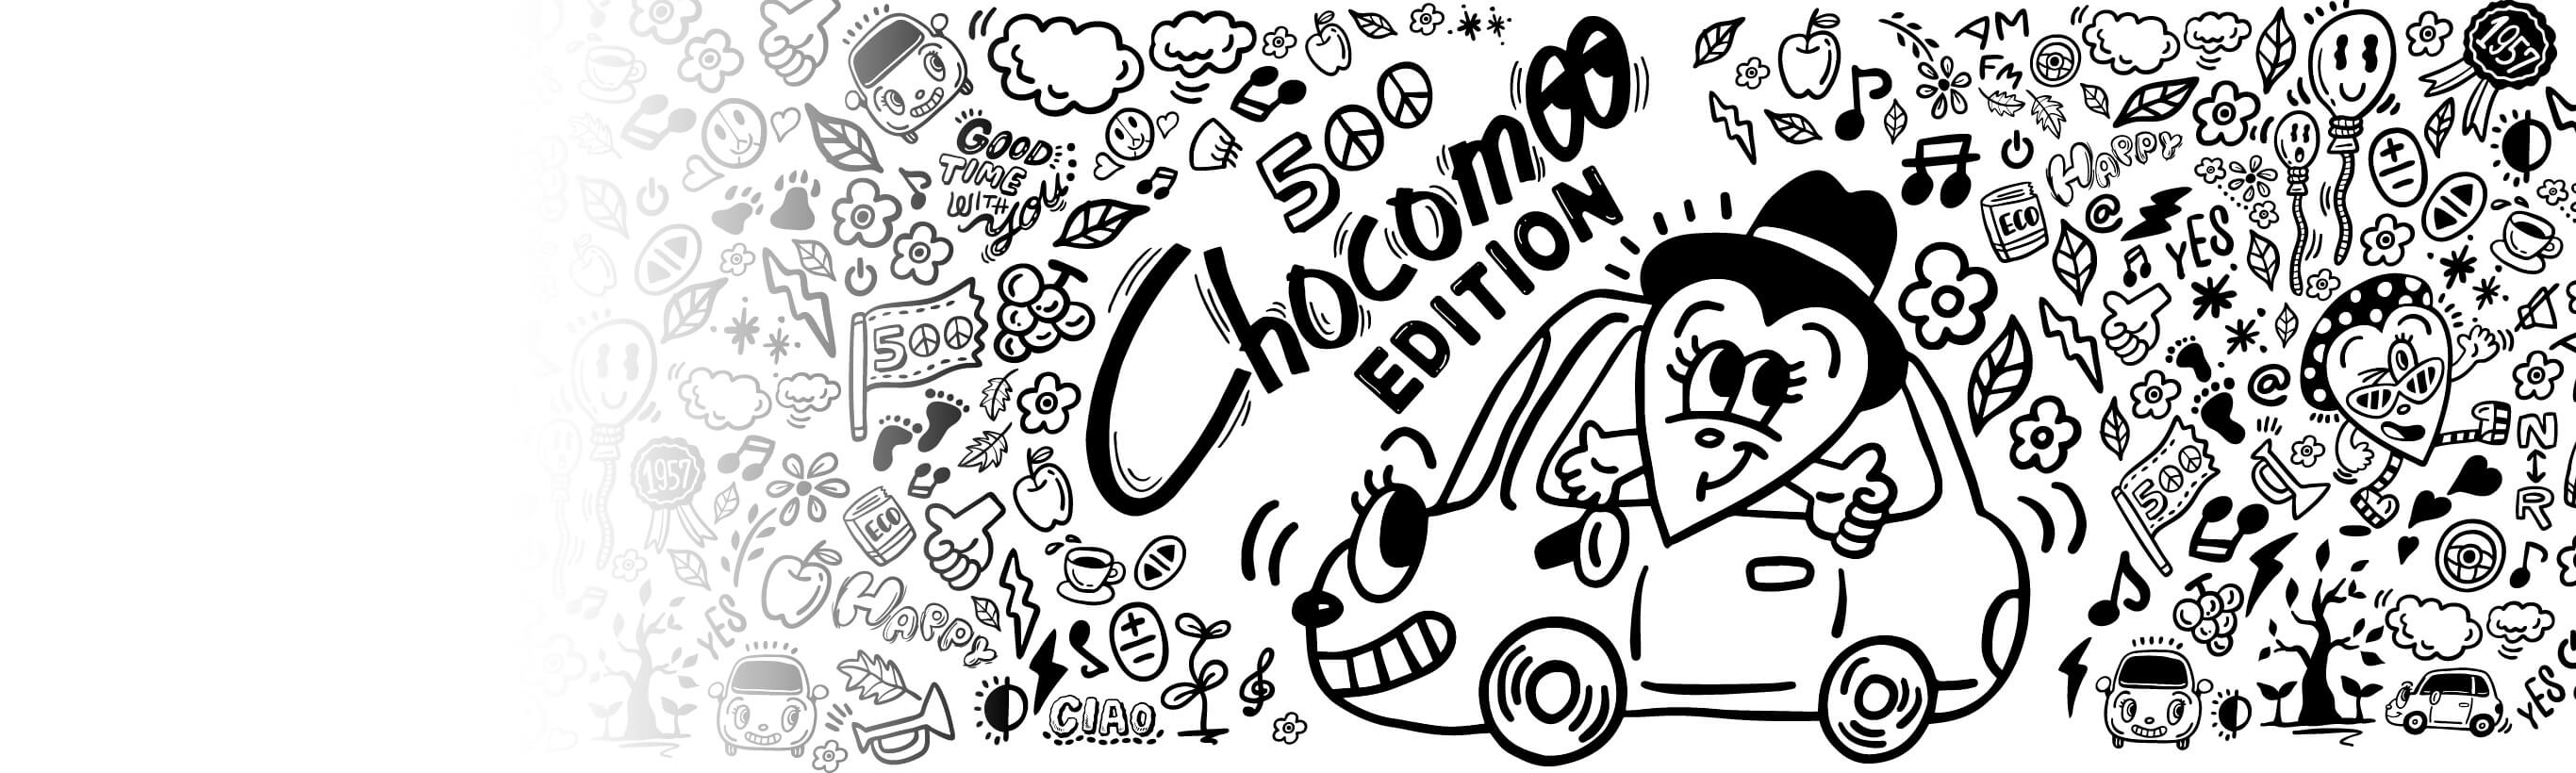 500 Super Pop Chocomoo Edition